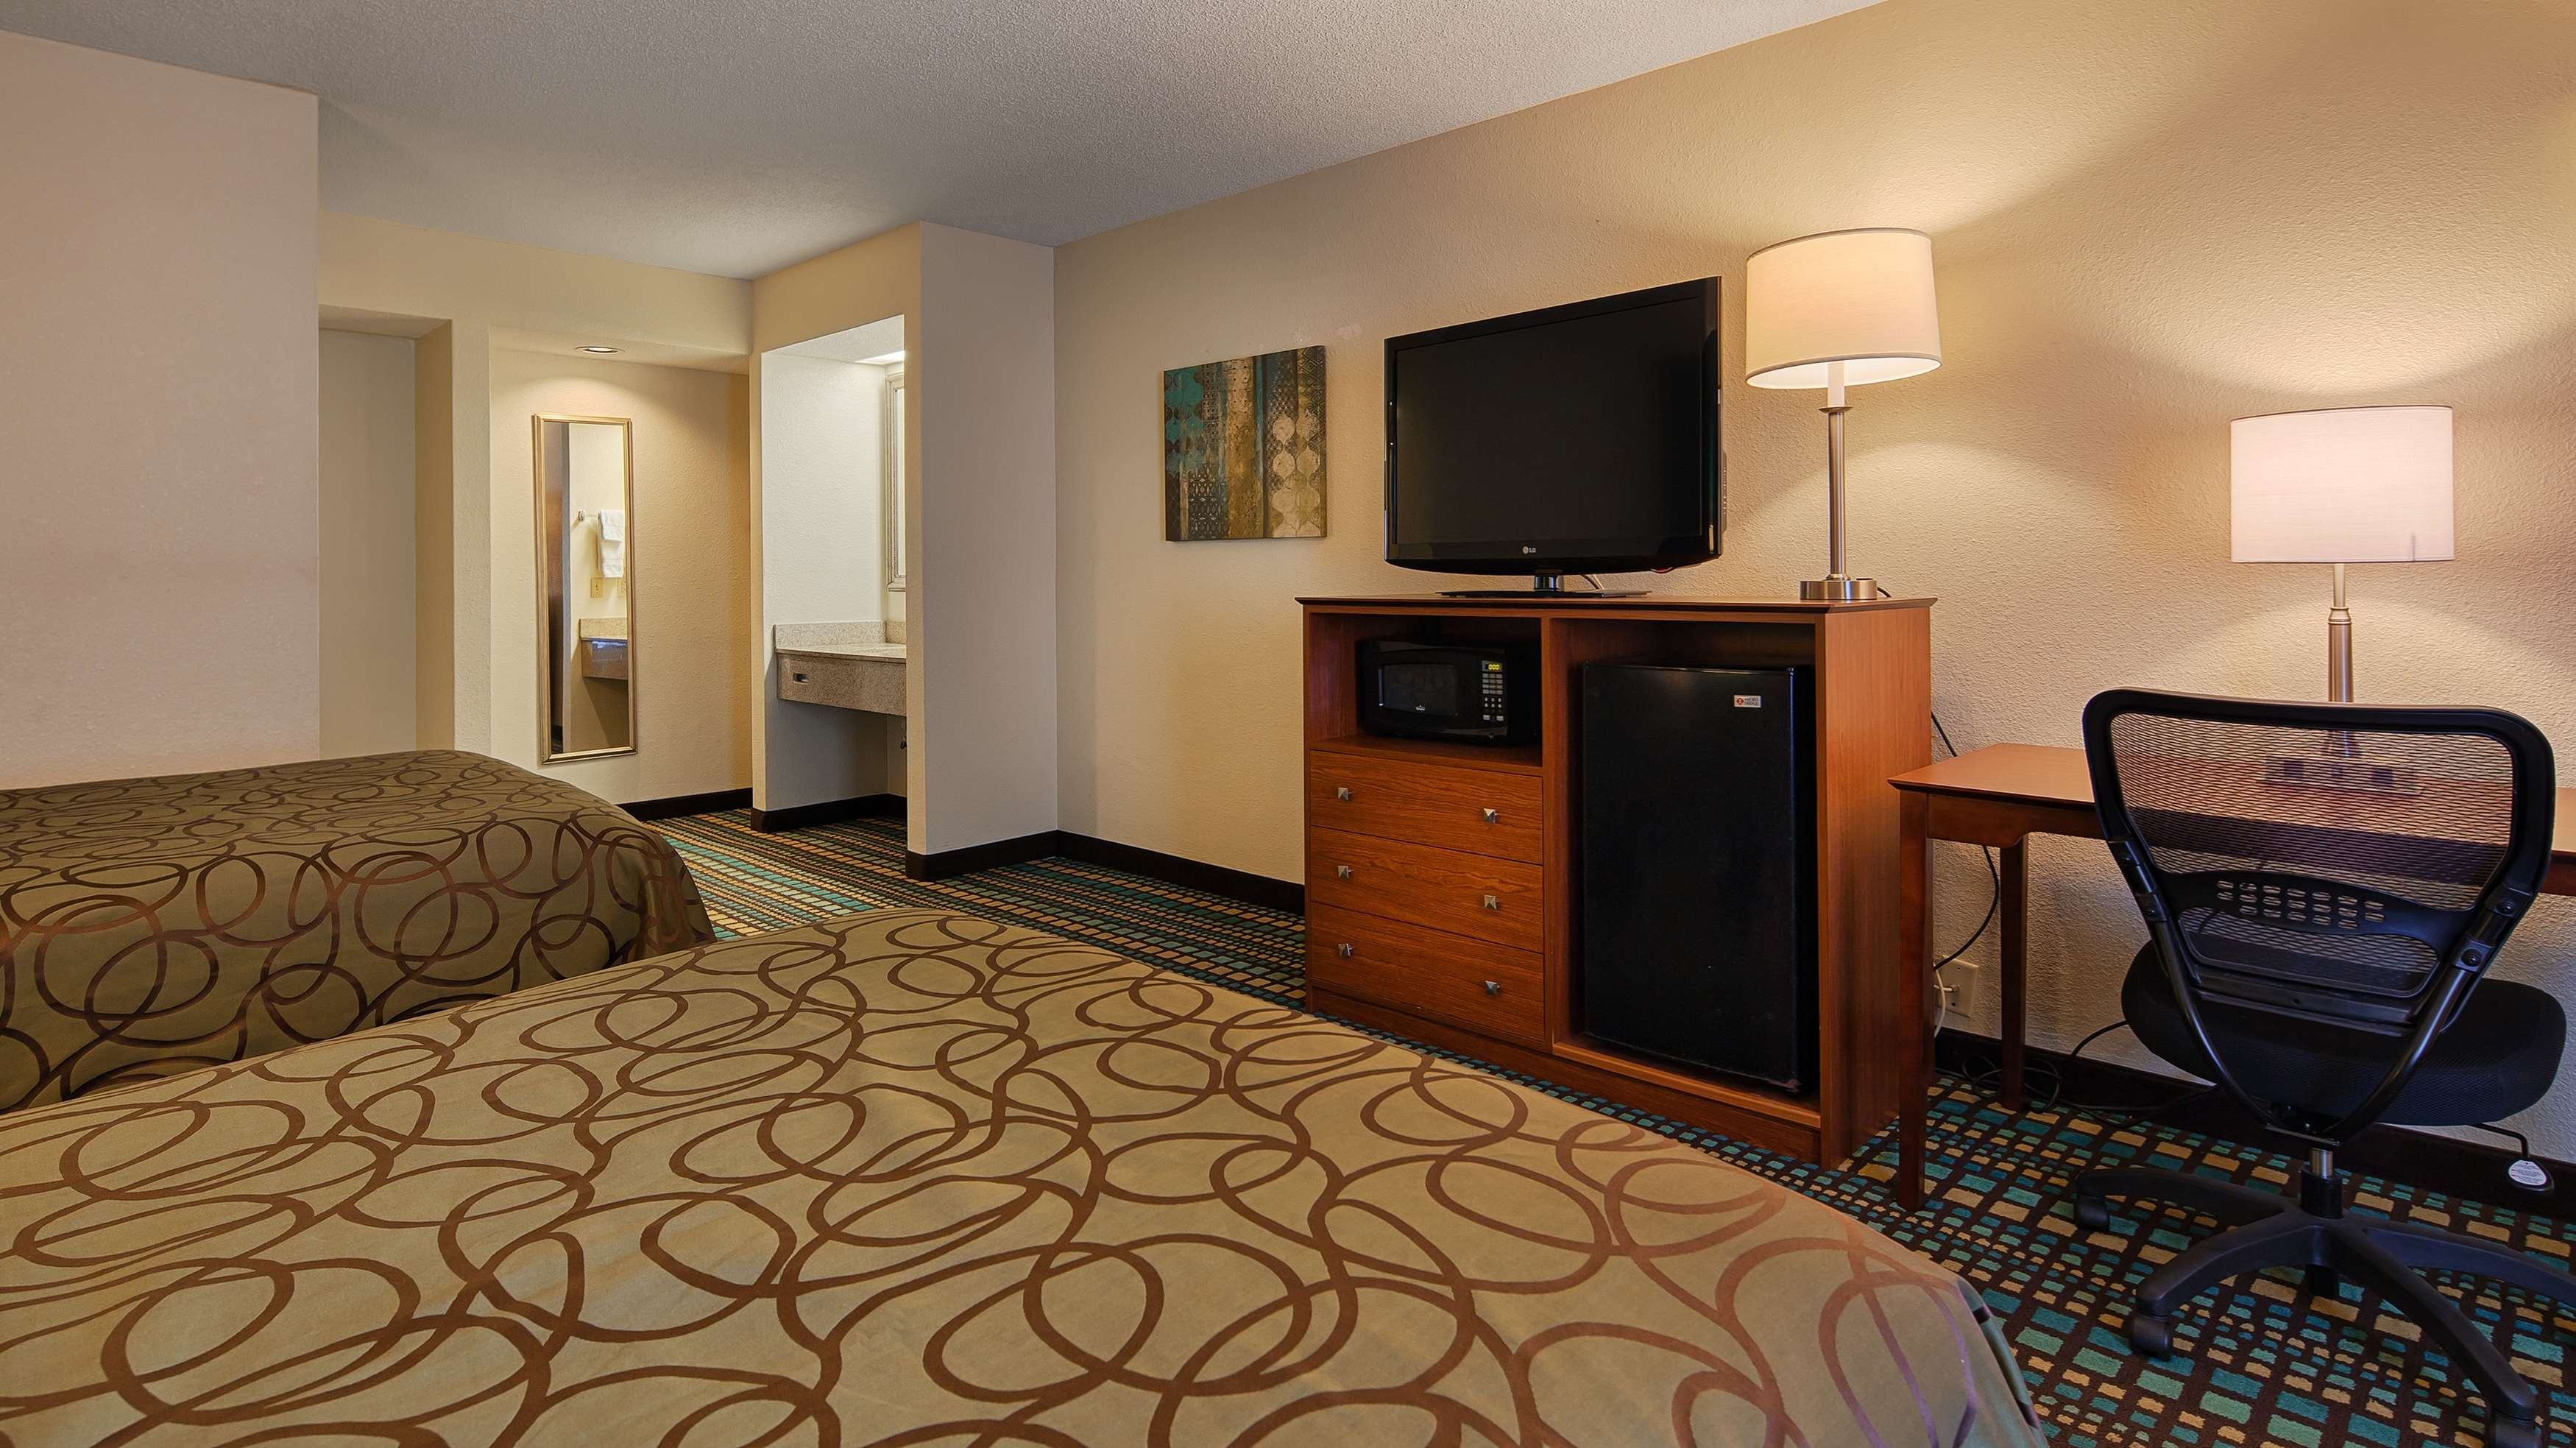 Best Western Tallahassee-Downtown Inn & Suites image 17